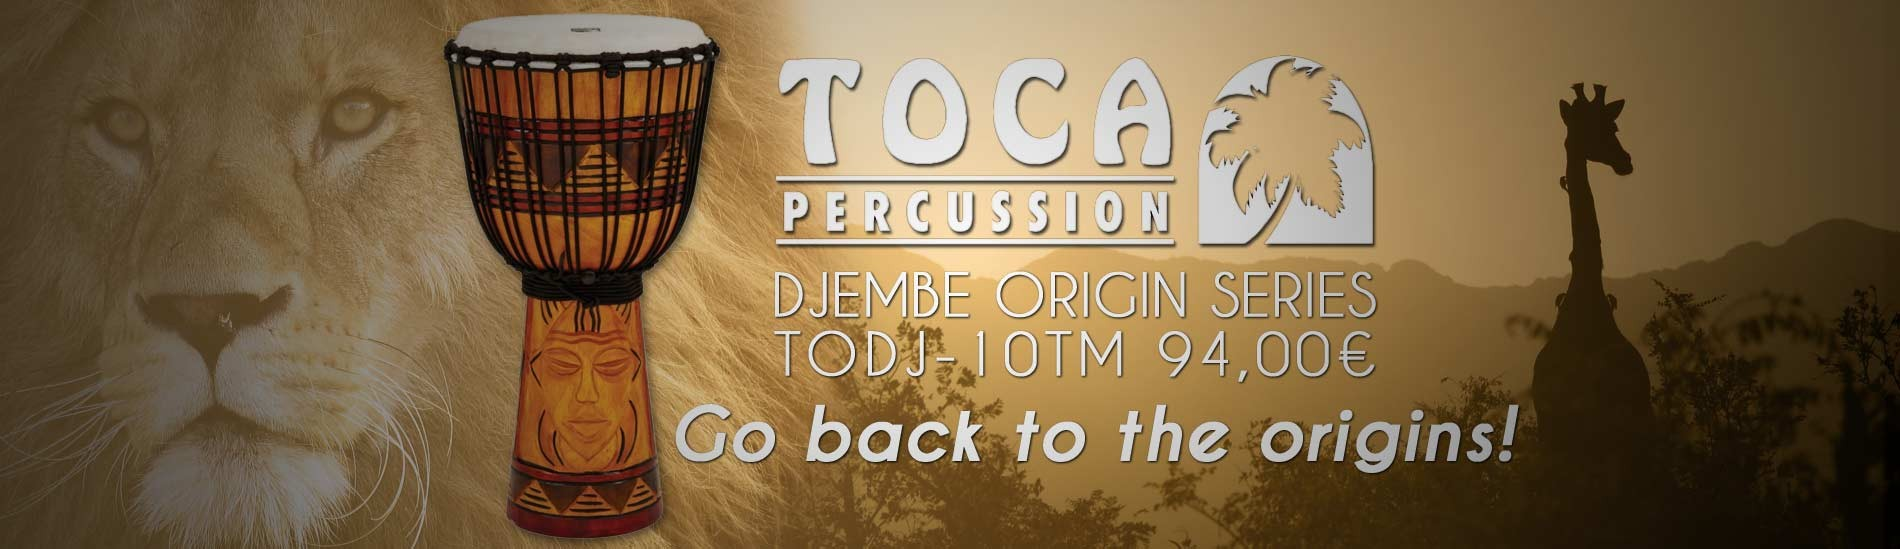 Toca Percussion Djembe TODJ-10TM Origin Series